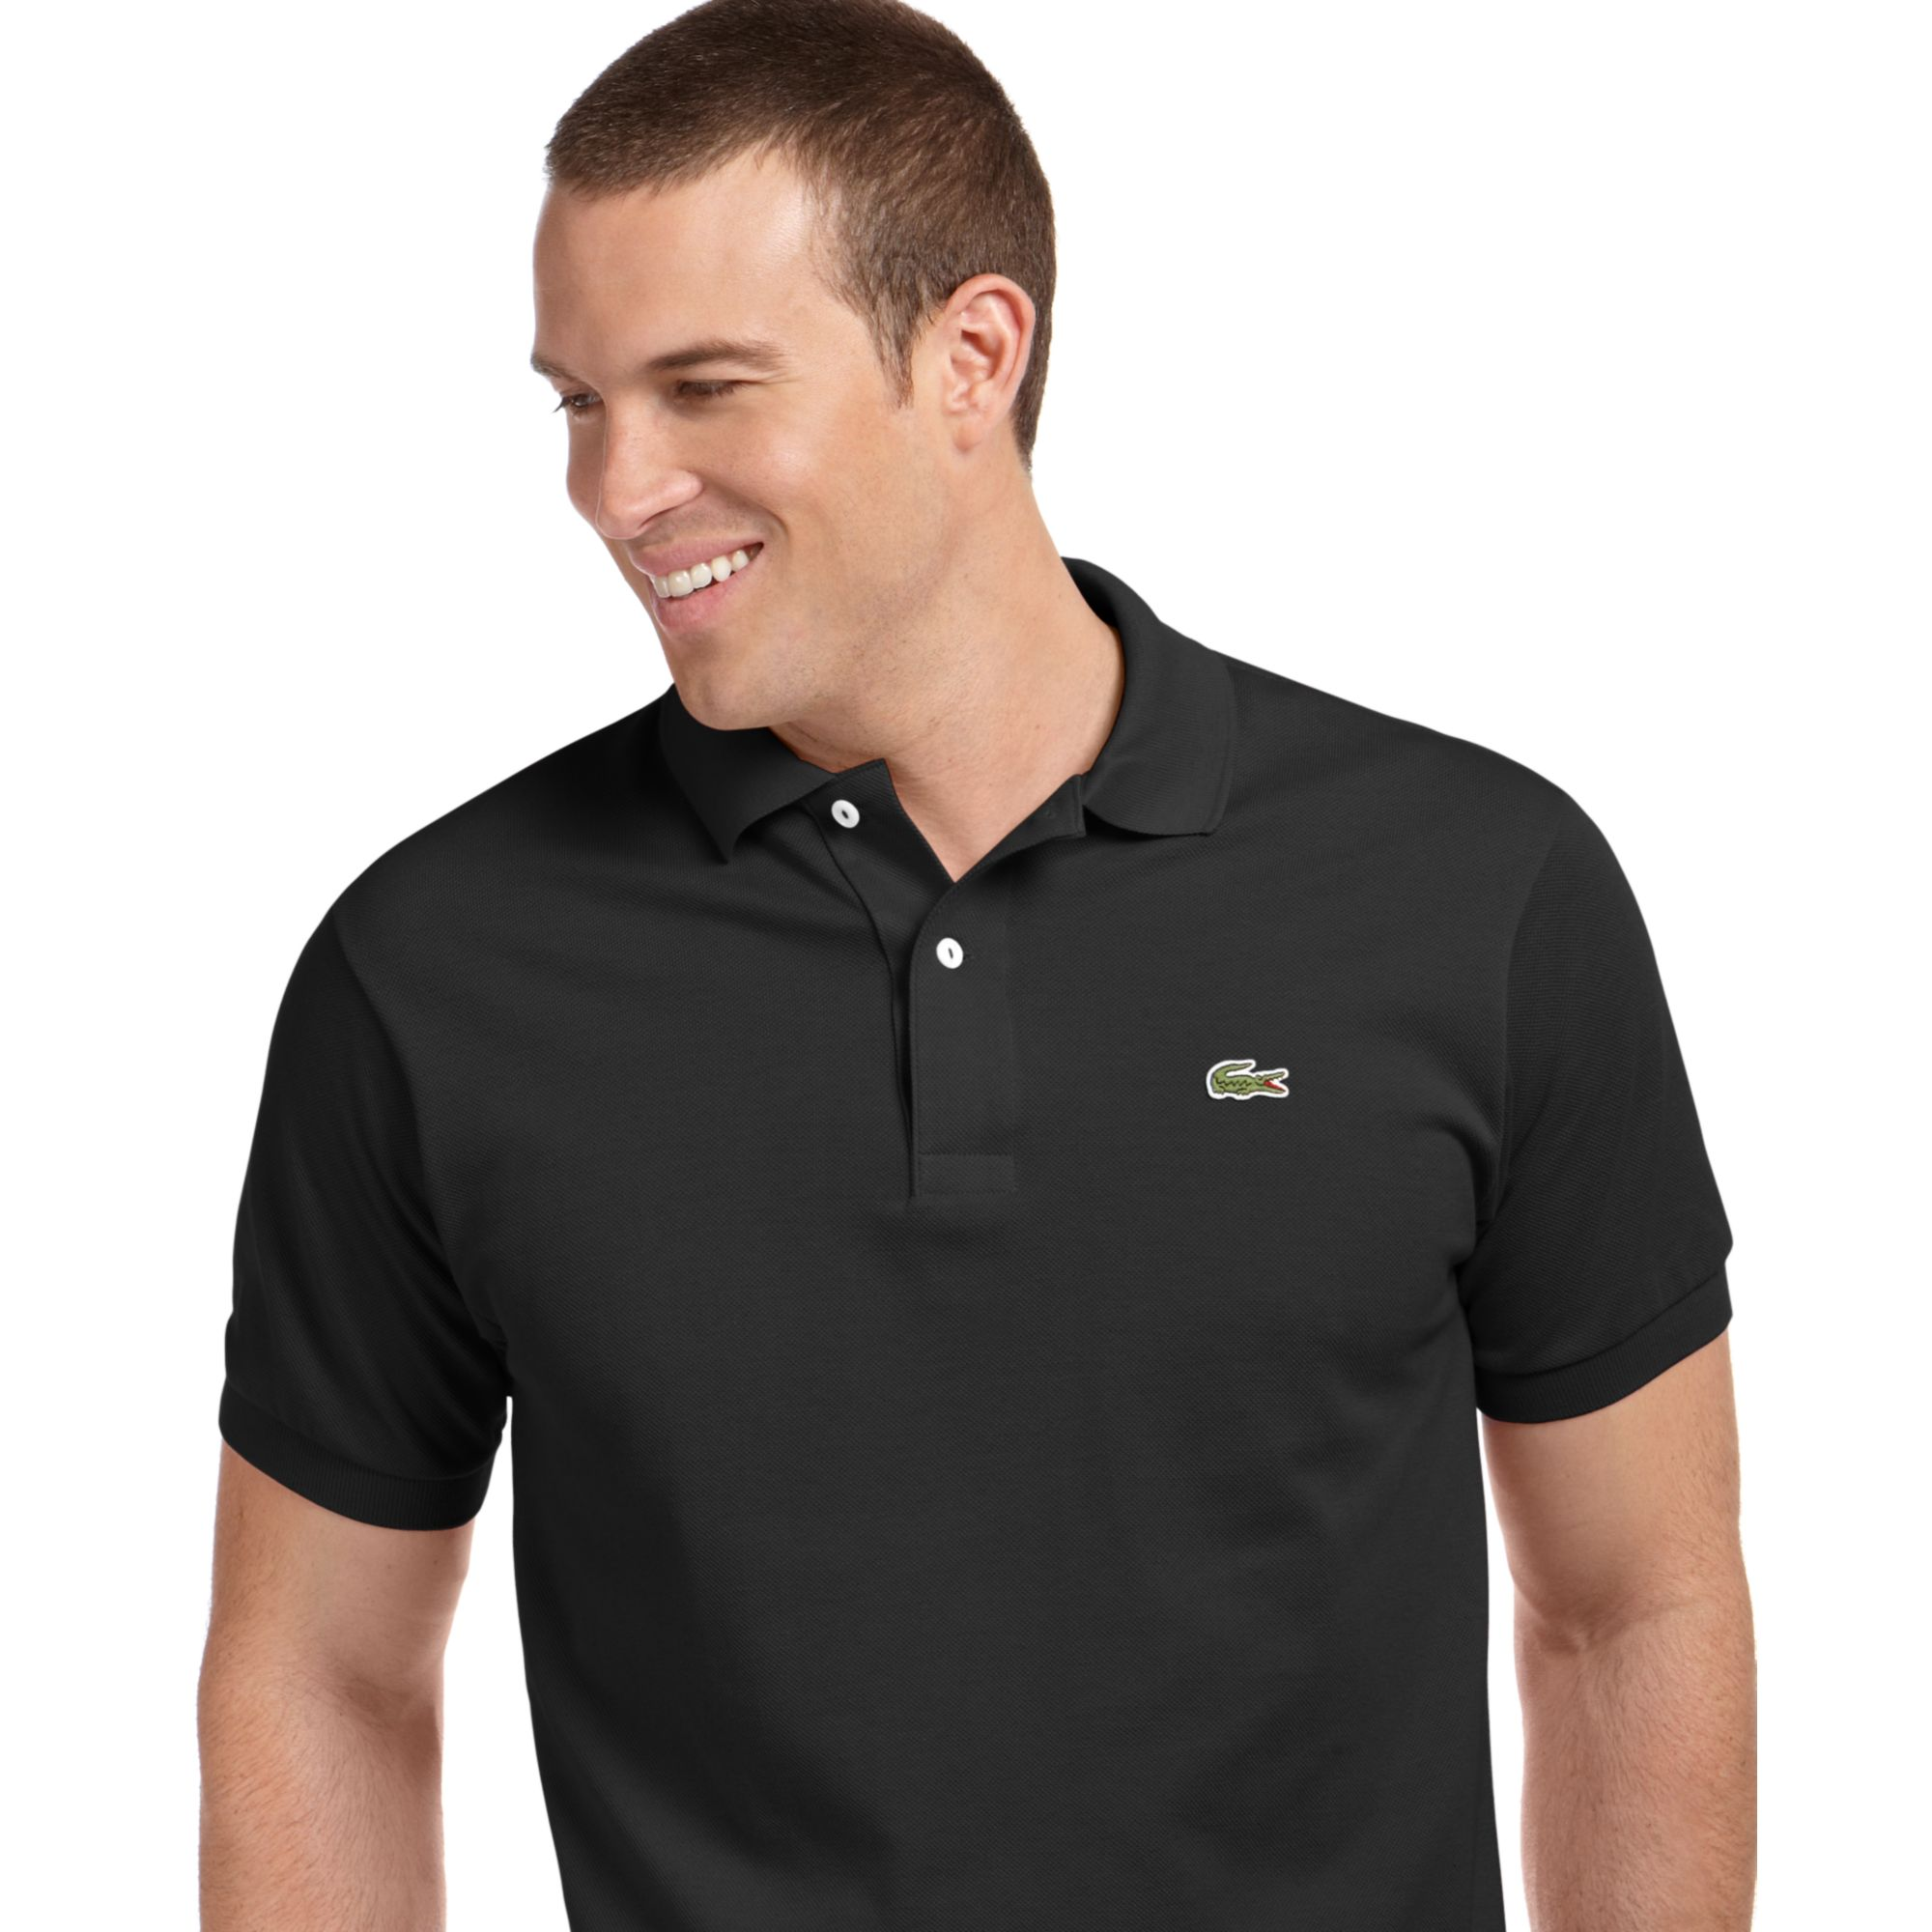 Lyst Lacoste Classic Pique Polo Shirt In Black For Men